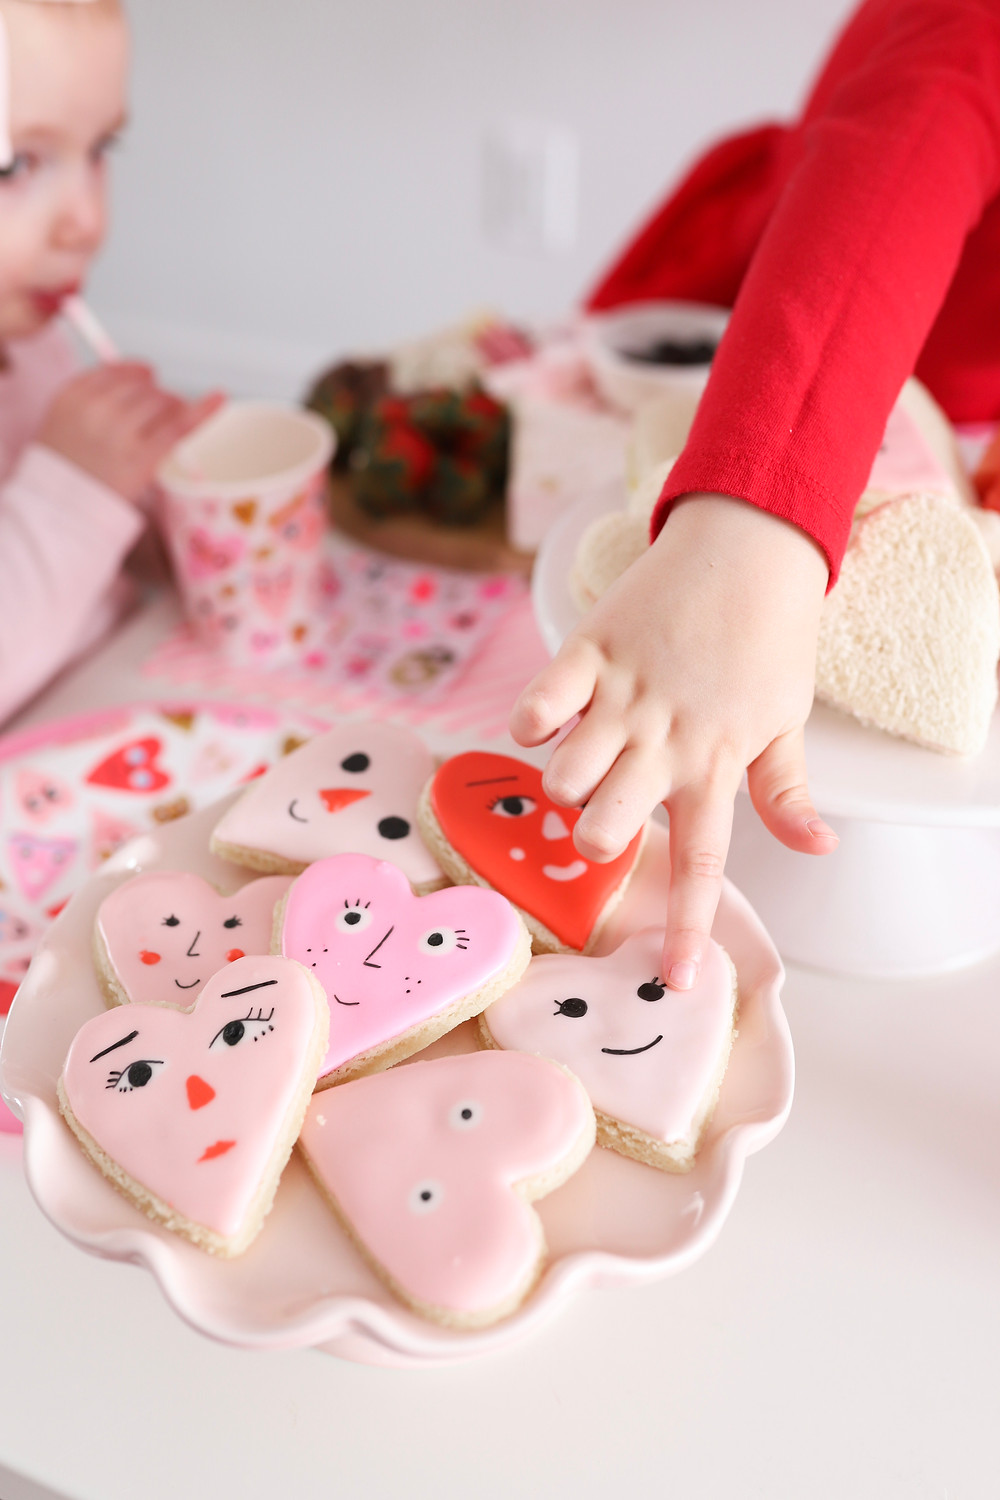 A plate of Valentine's Day cookies.